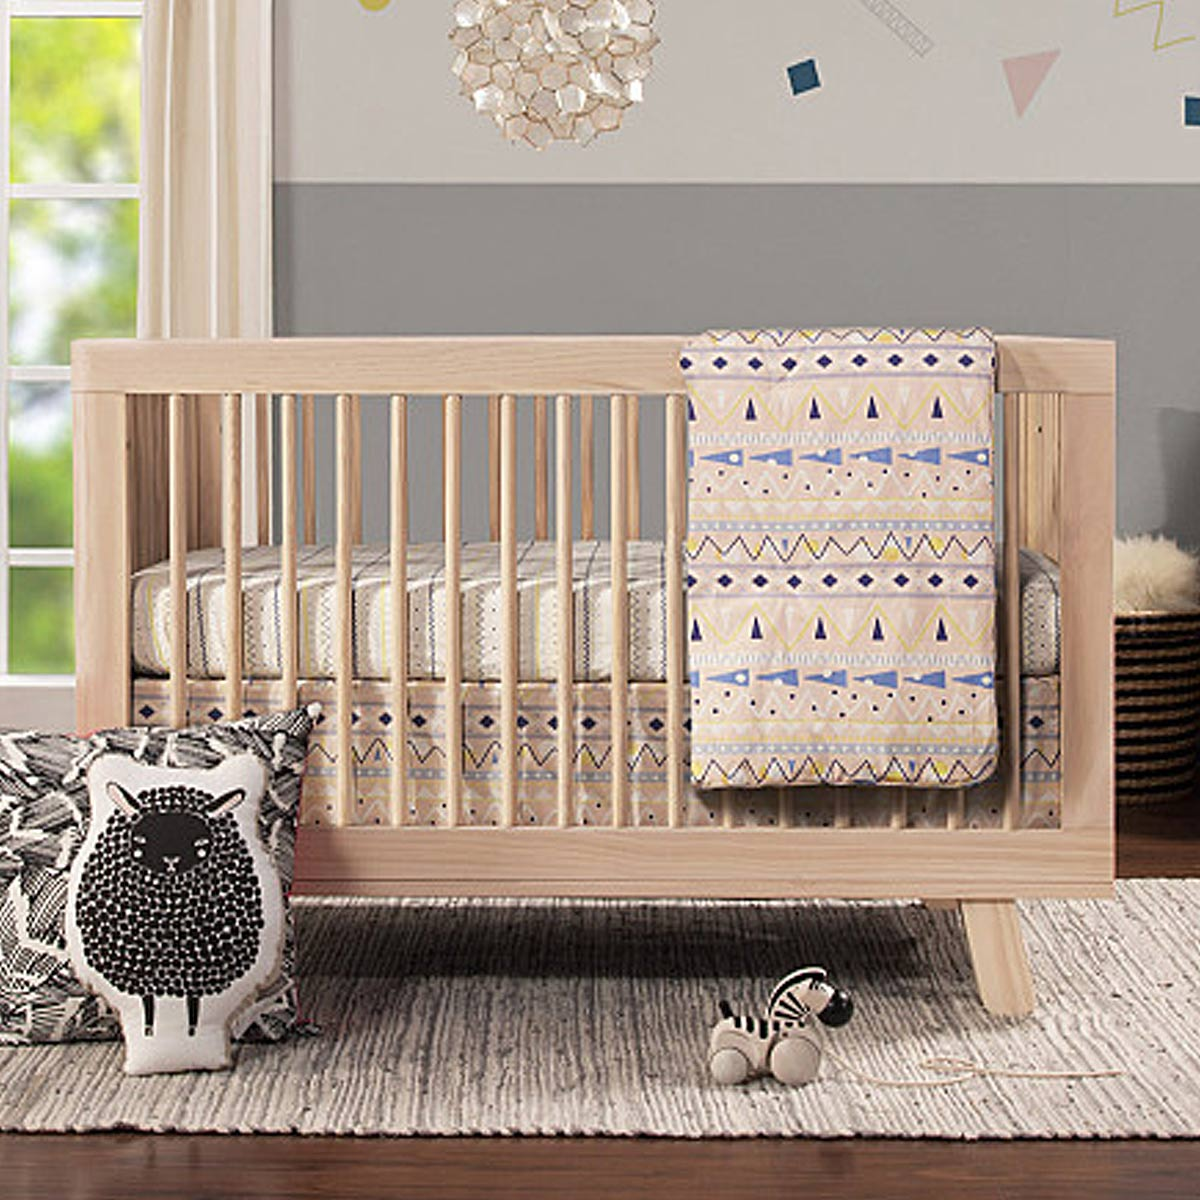 Babyletto hudson 3 in 1 convertible crib toddler bed conversion kit in washed natural free shipping